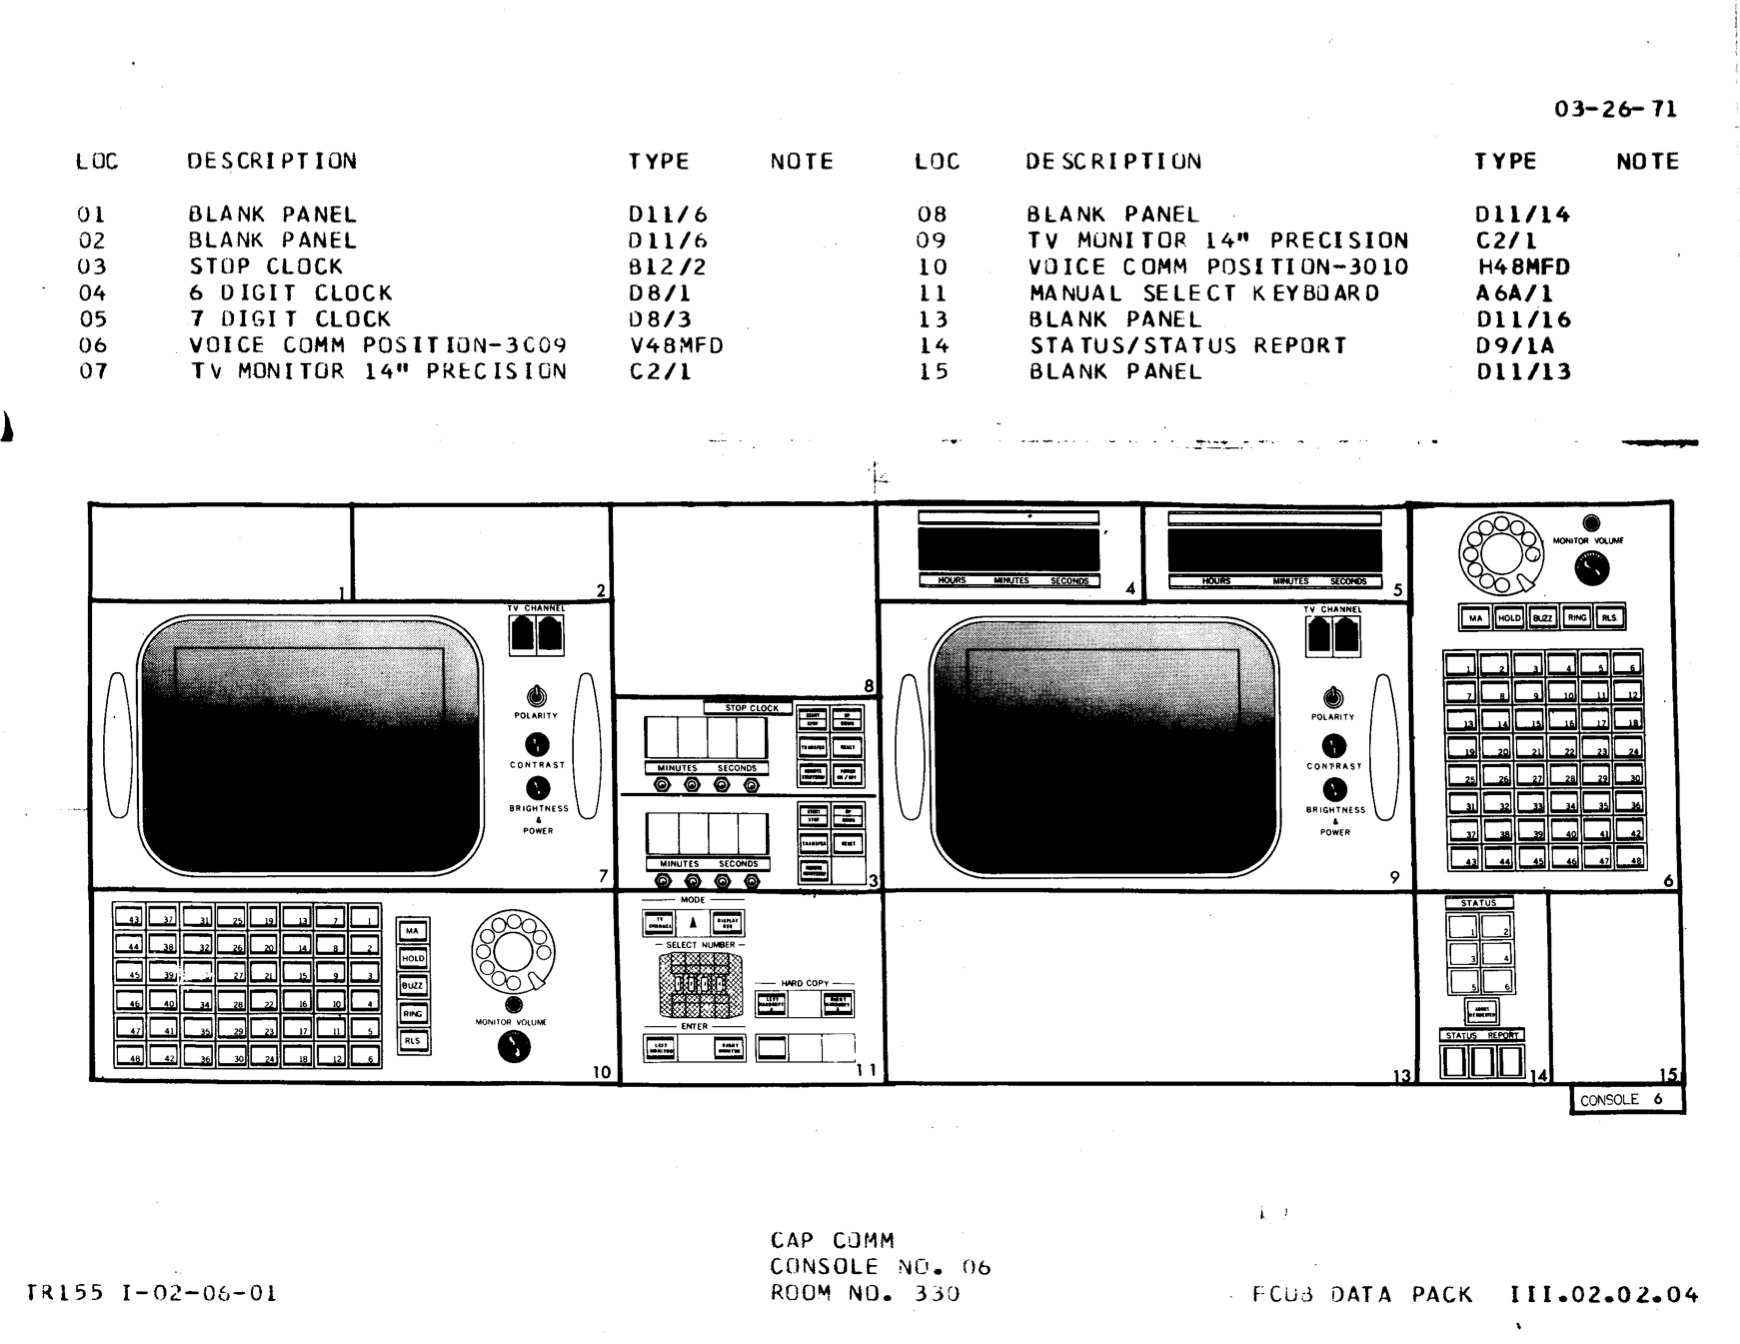 CAPCOM console diagram, Apollo configuration